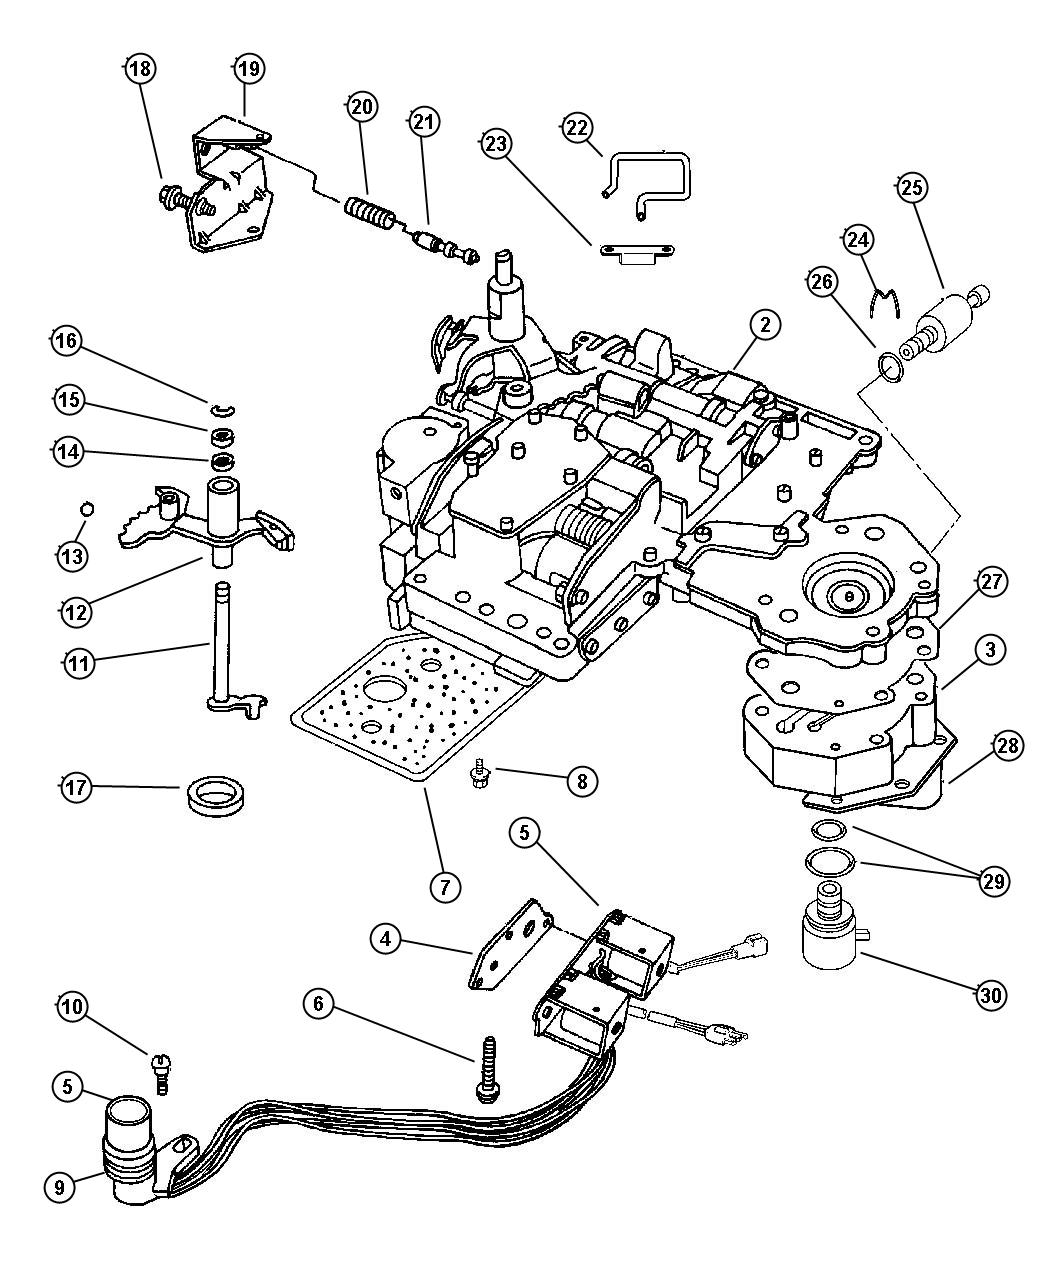 hight resolution of 46re wiring diagram wiring diagram schematics 1997 dodge ram 1500 wiring diagram 2001 dodge ram 1500 transmission wiring diagram